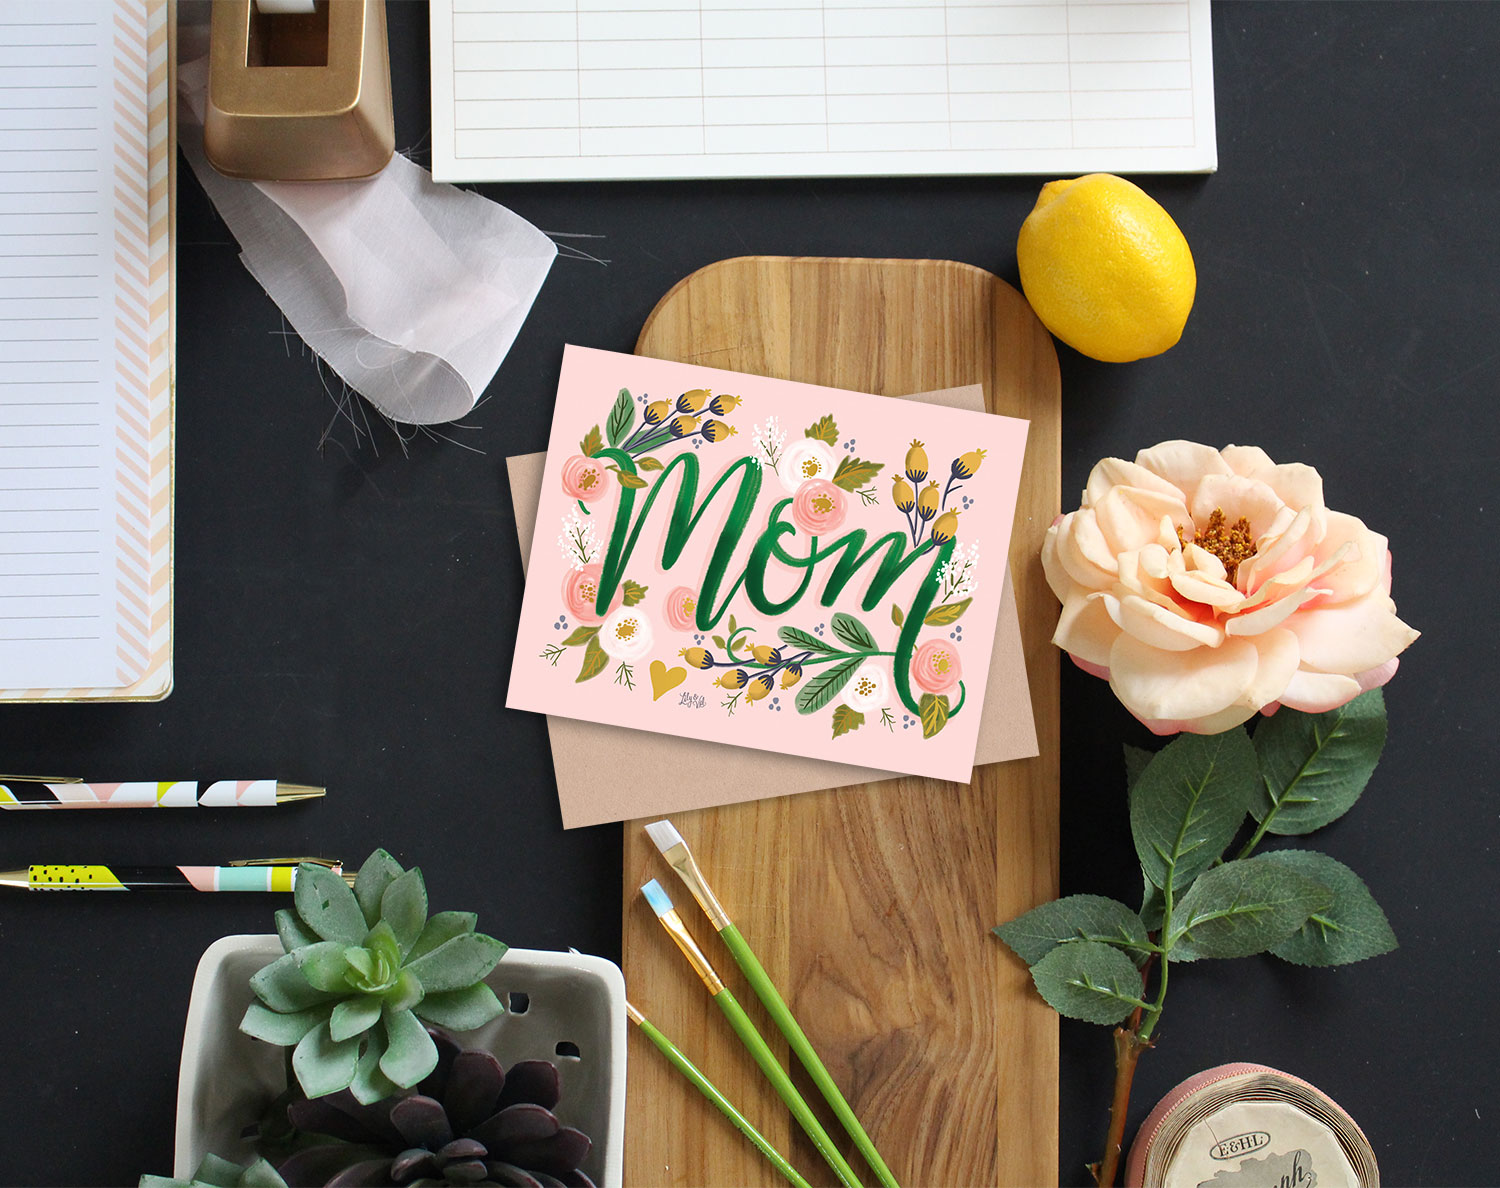 Gold Foil Hand-drawn MOM card for Mother's Day or any special occasion to make Mom feel special